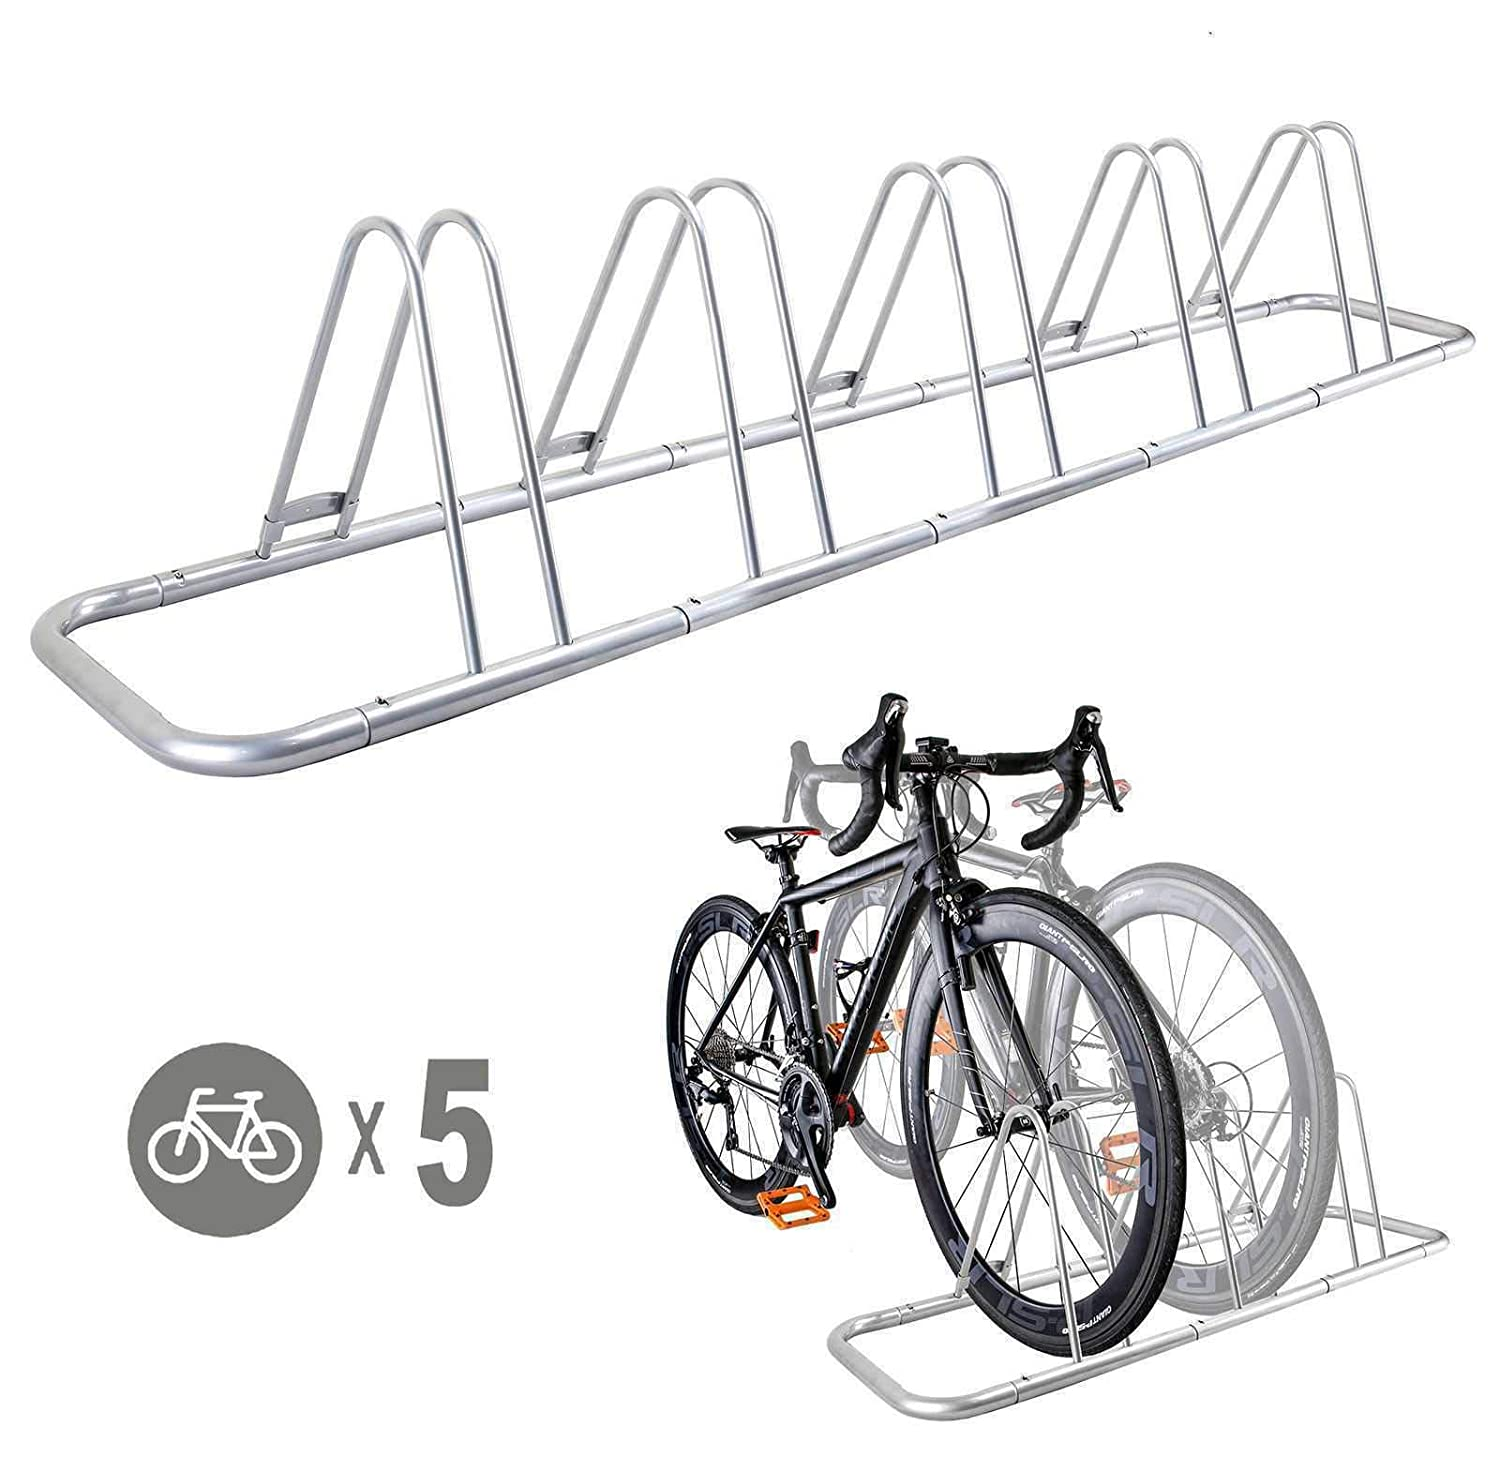 CyclingDeal 5 Bicycle Floor Type Parking Rack Stand – for Mountain and Road Bike Indoor Outdoor Nook Garage Storage